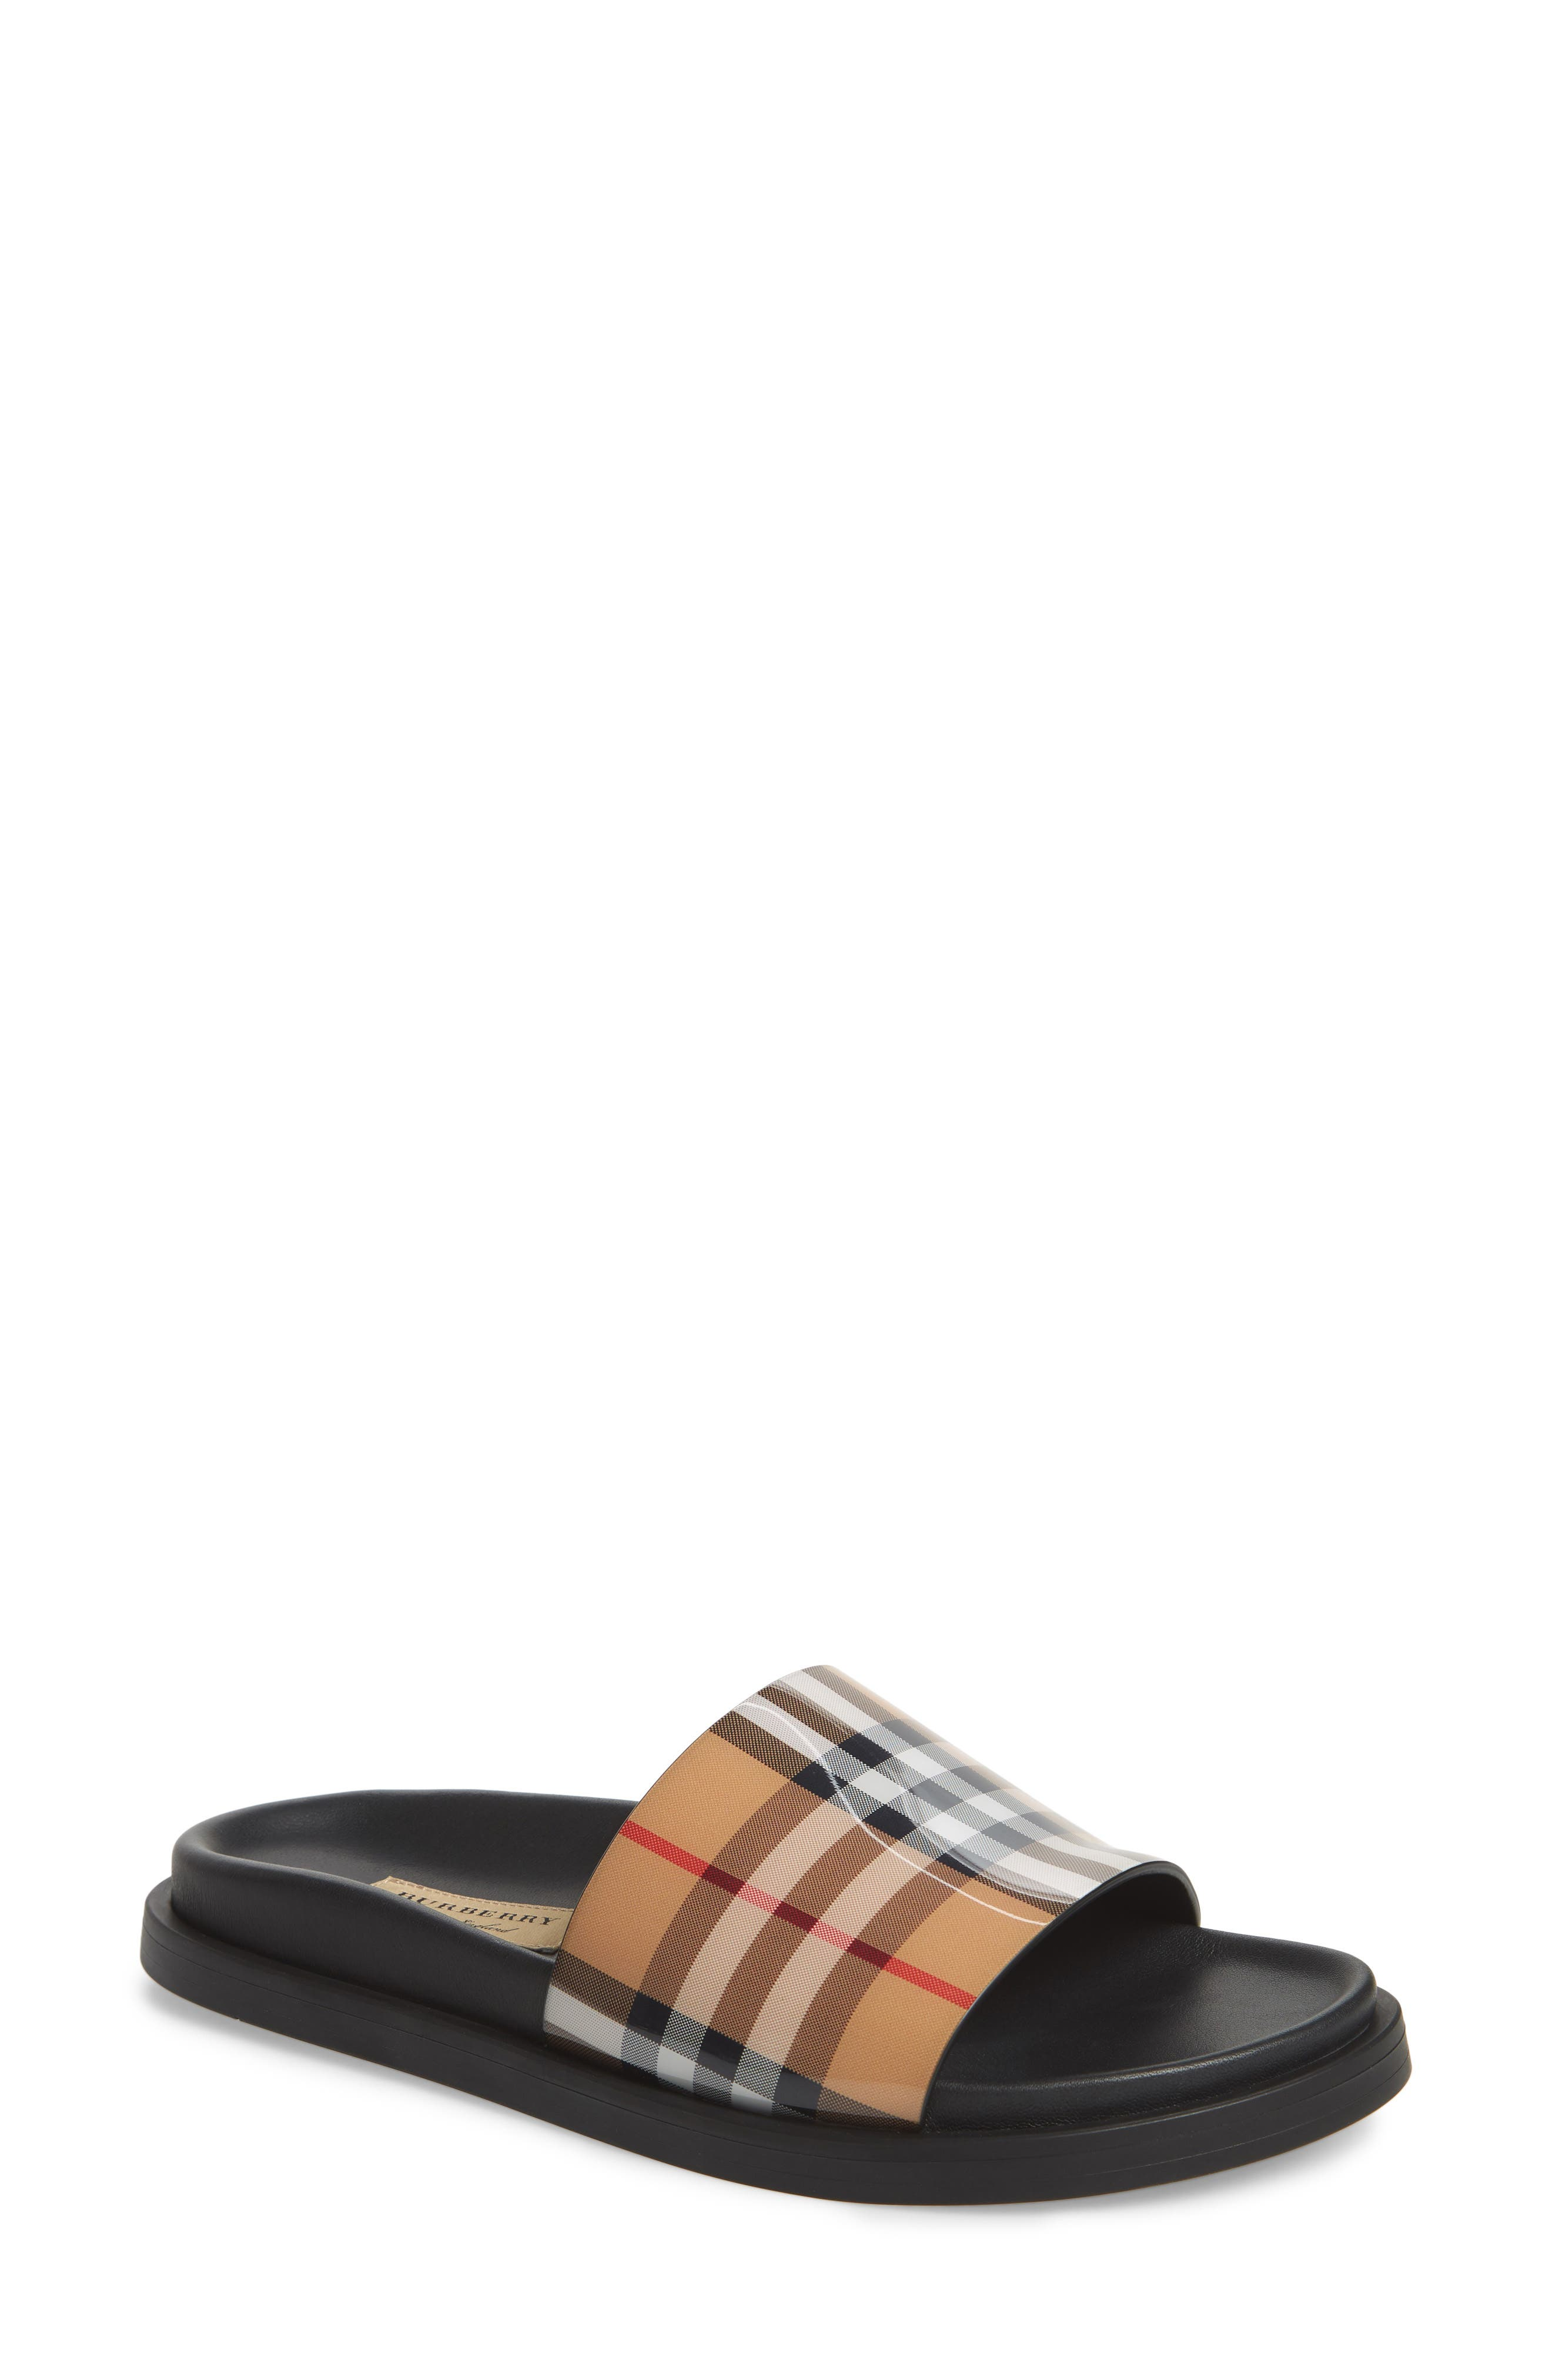 BURBERRY,                             Vintage Check Slide Sandal,                             Main thumbnail 1, color,                             250